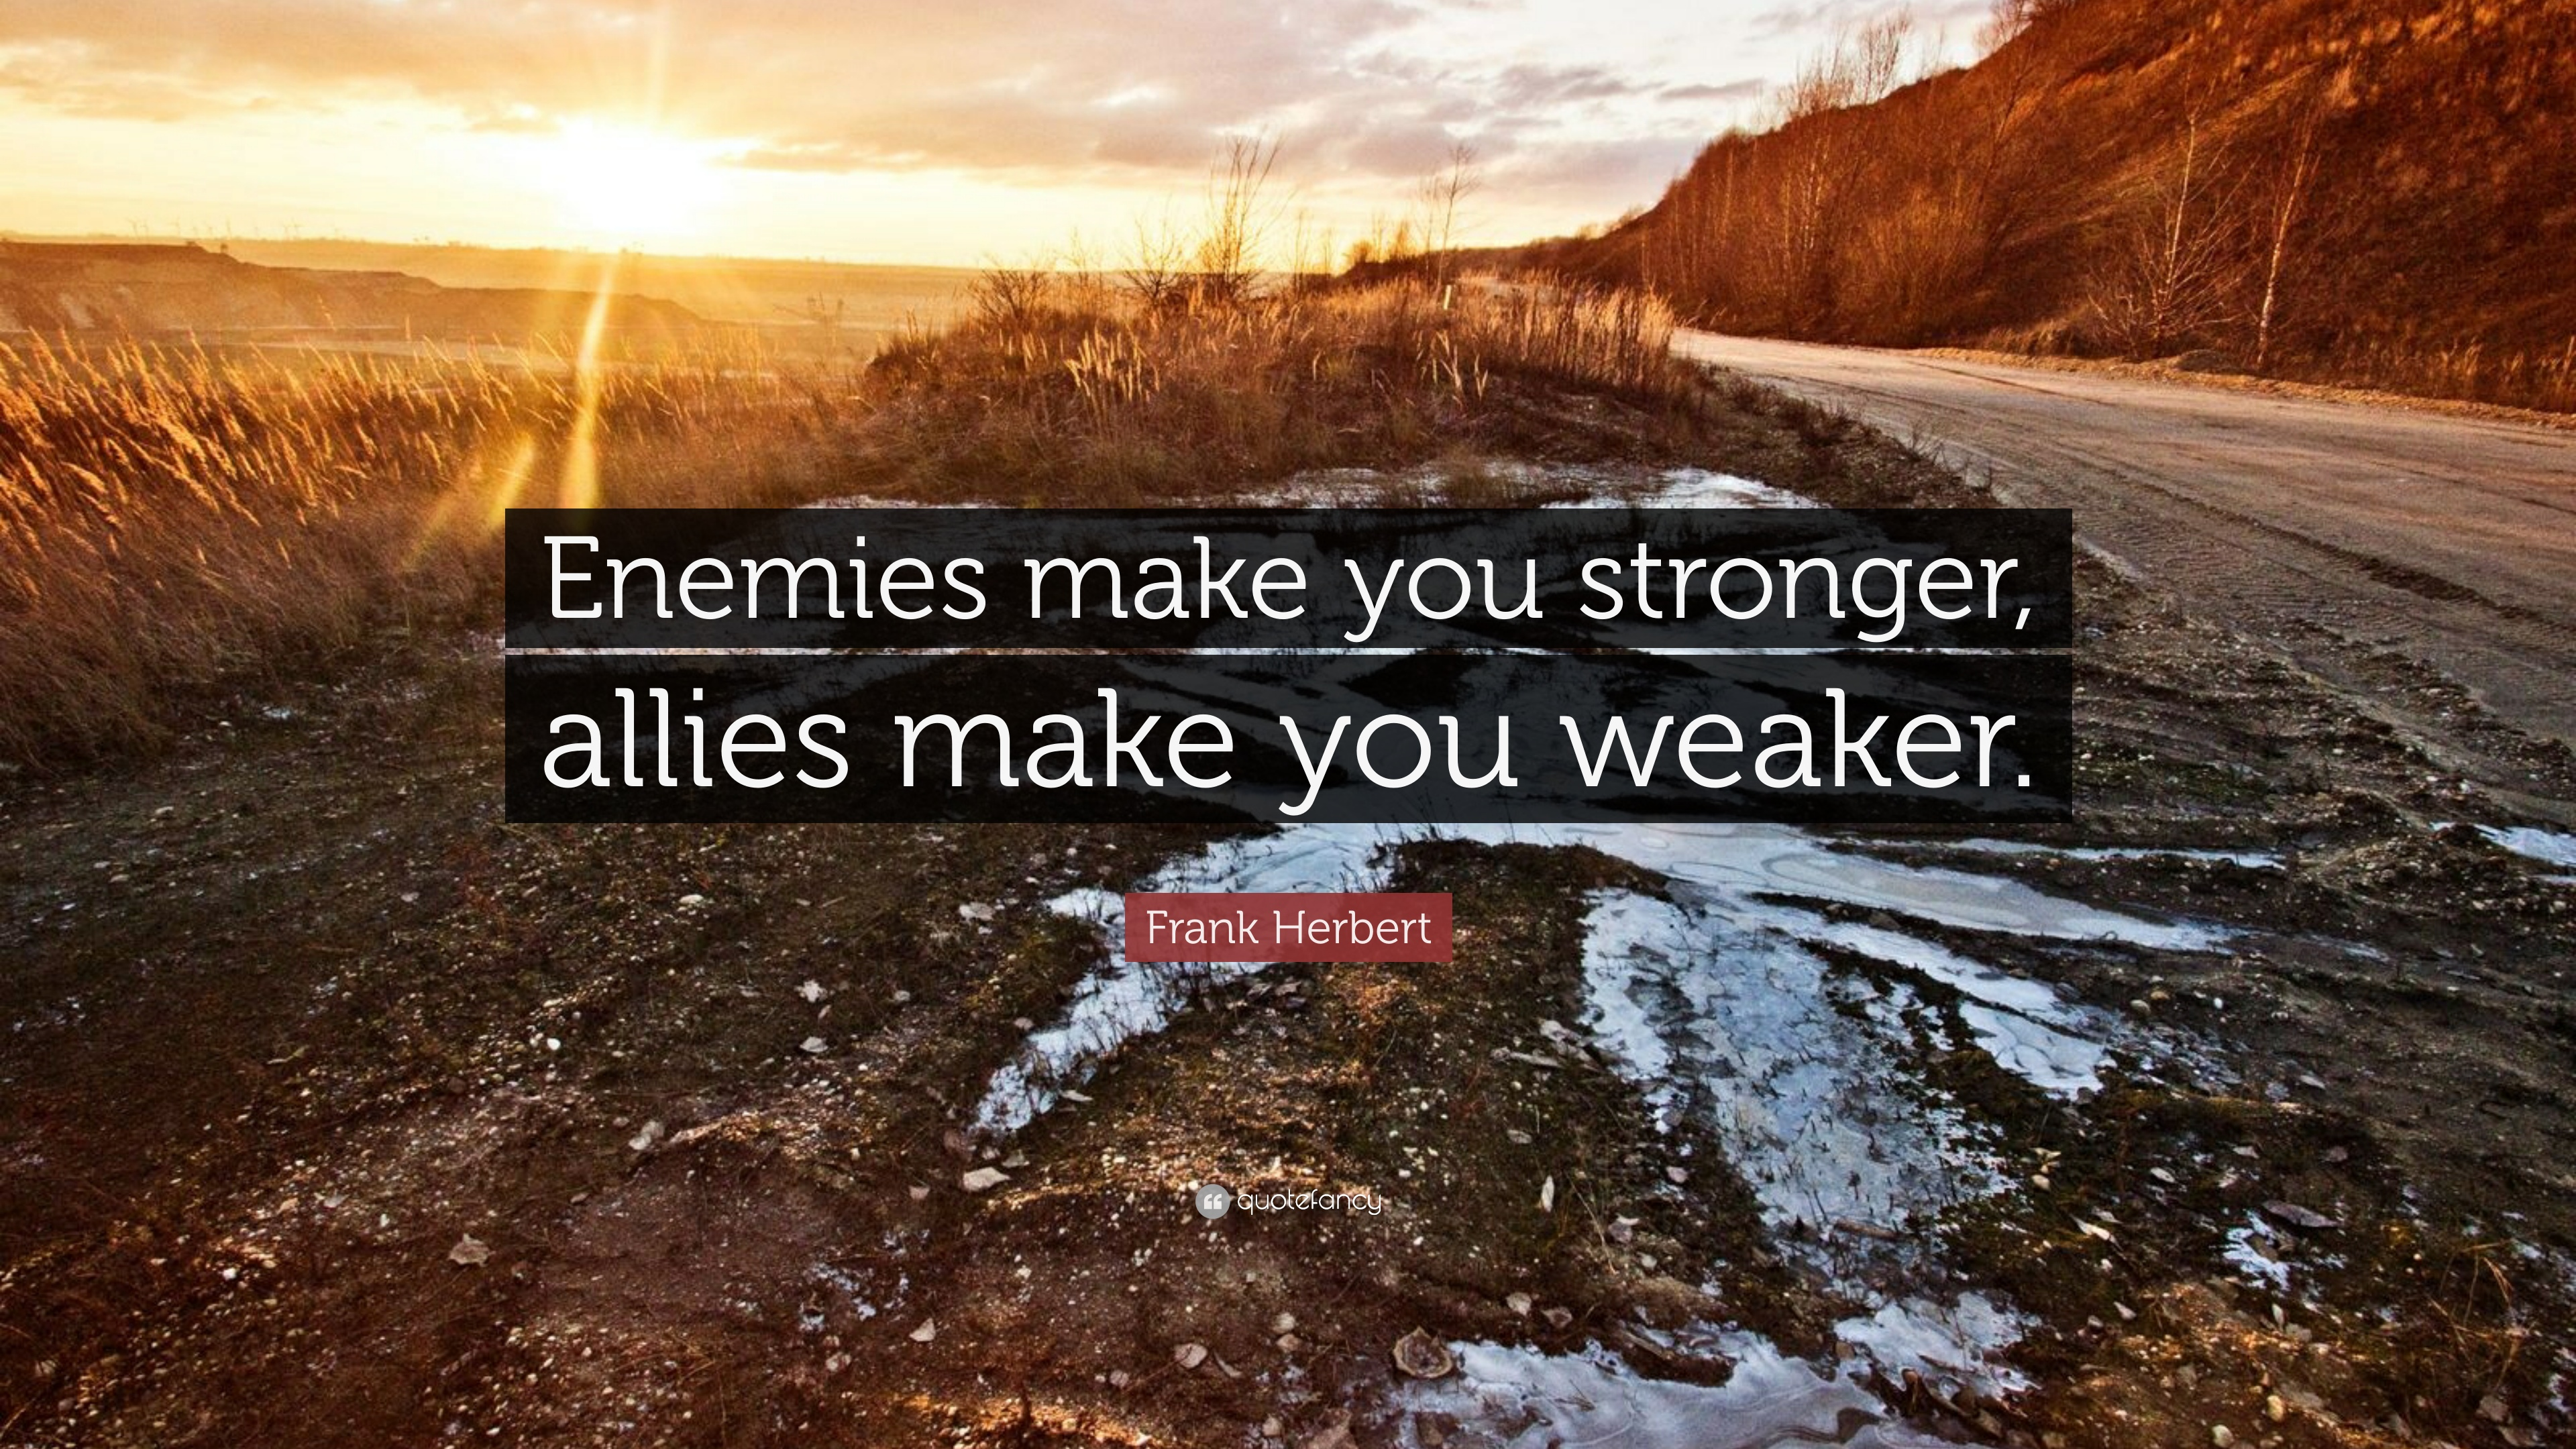 frank herbert quote enemies make you stronger allies make you